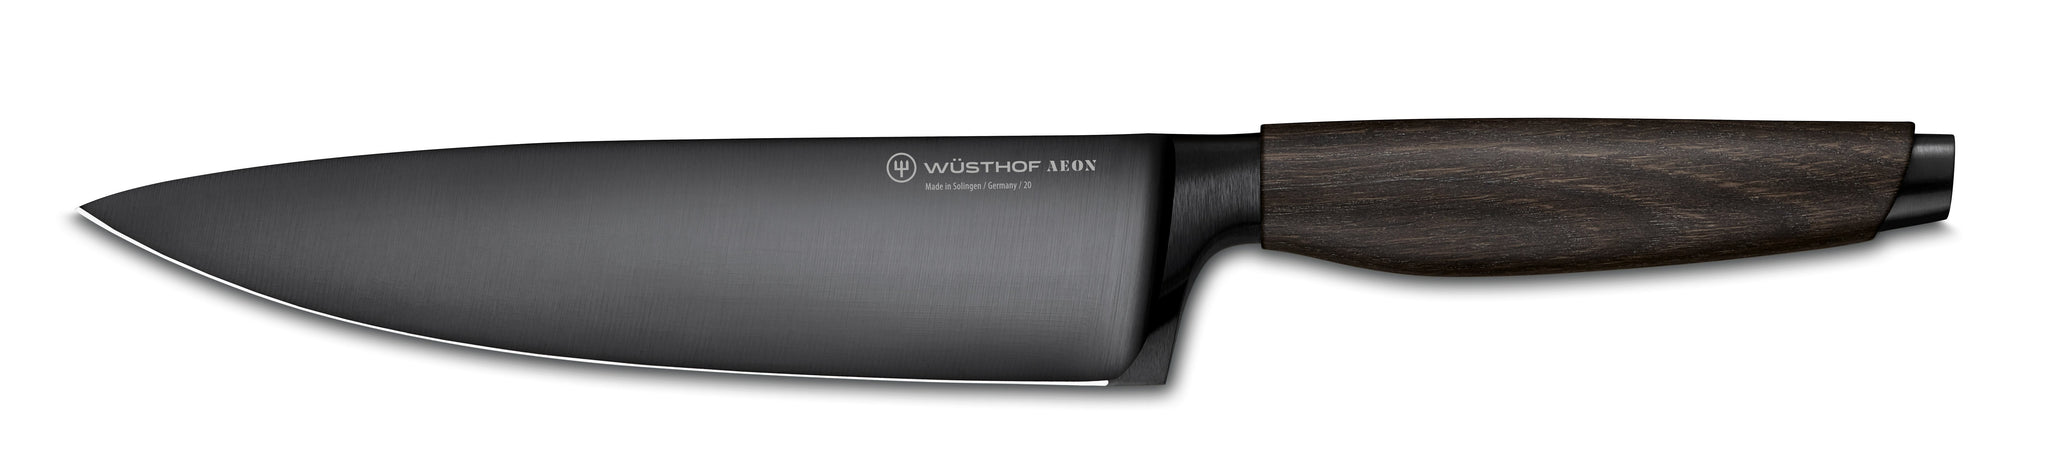 "8"" Cook's Knife - 1011000120"